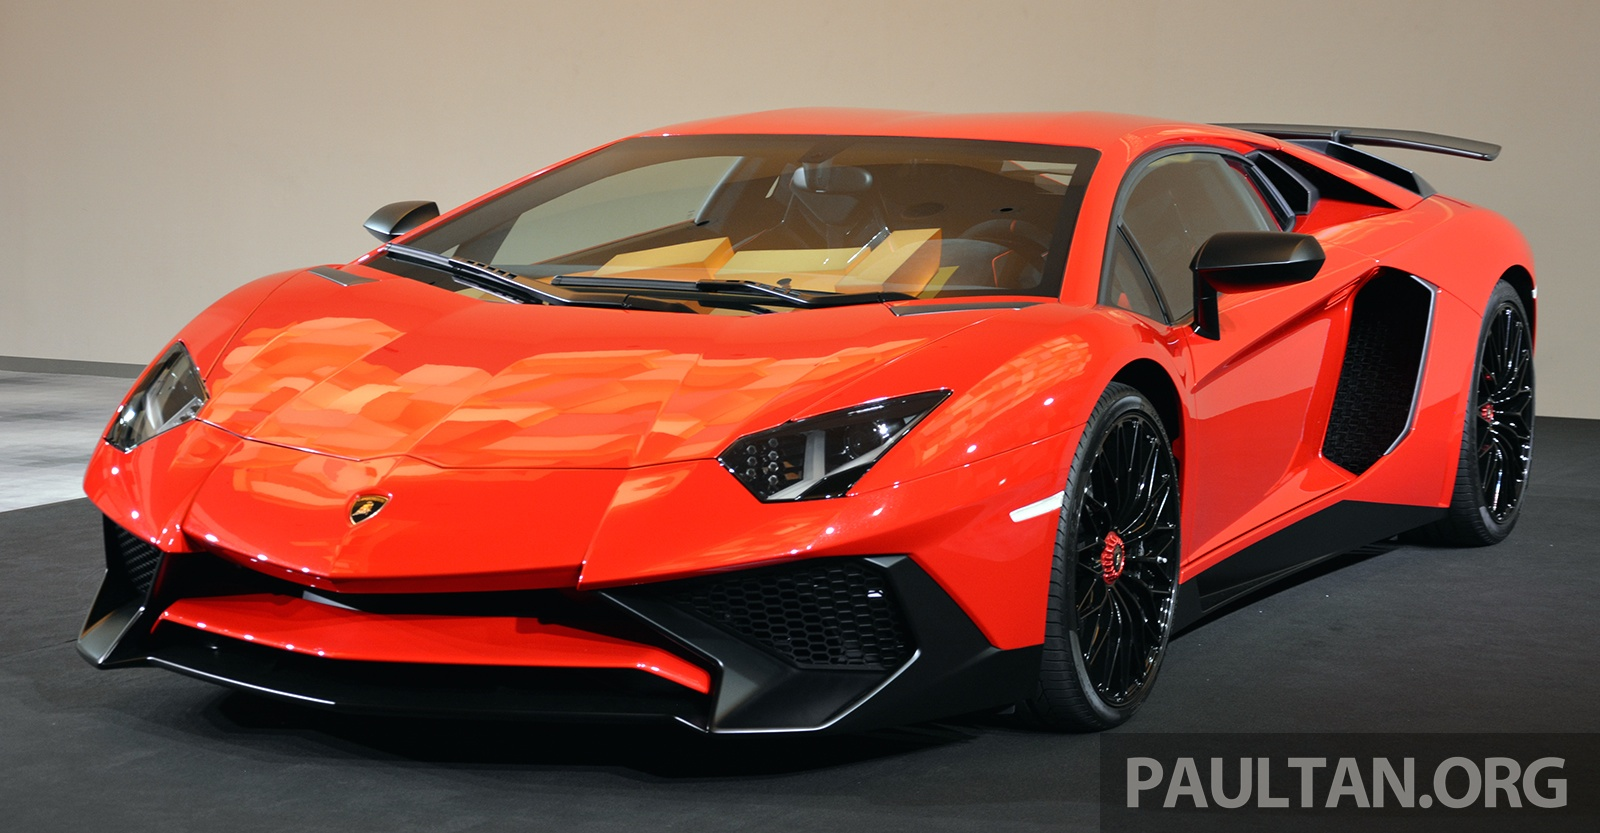 video: lamborghini aventador lp 750-4 superveloce laps the